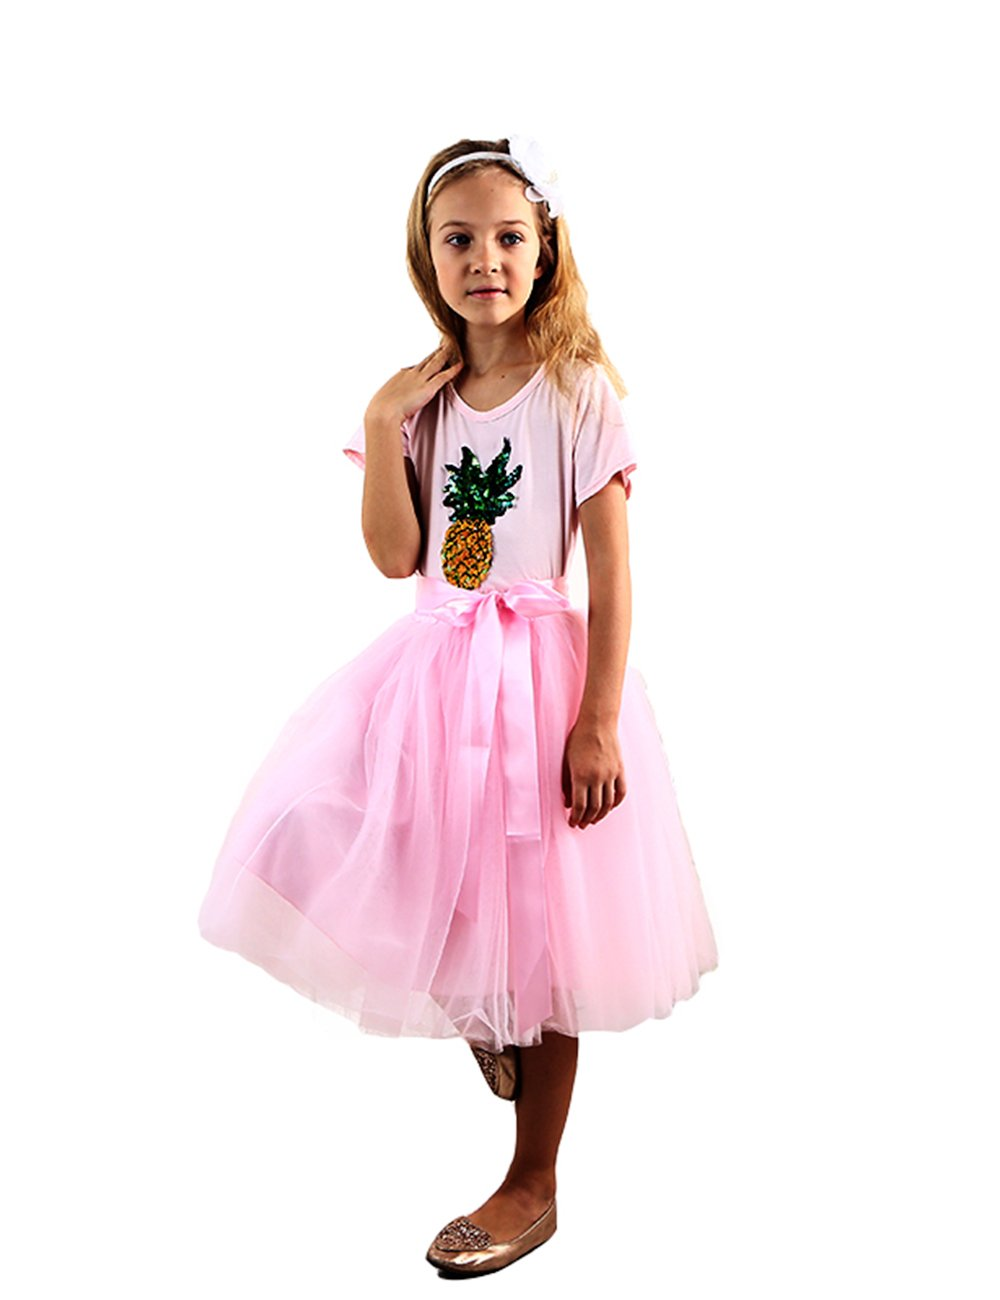 VIYOO Girls Casual 4-Layer Tulle Tutu Puff Mid-Calf Long Skirt Age 3-11